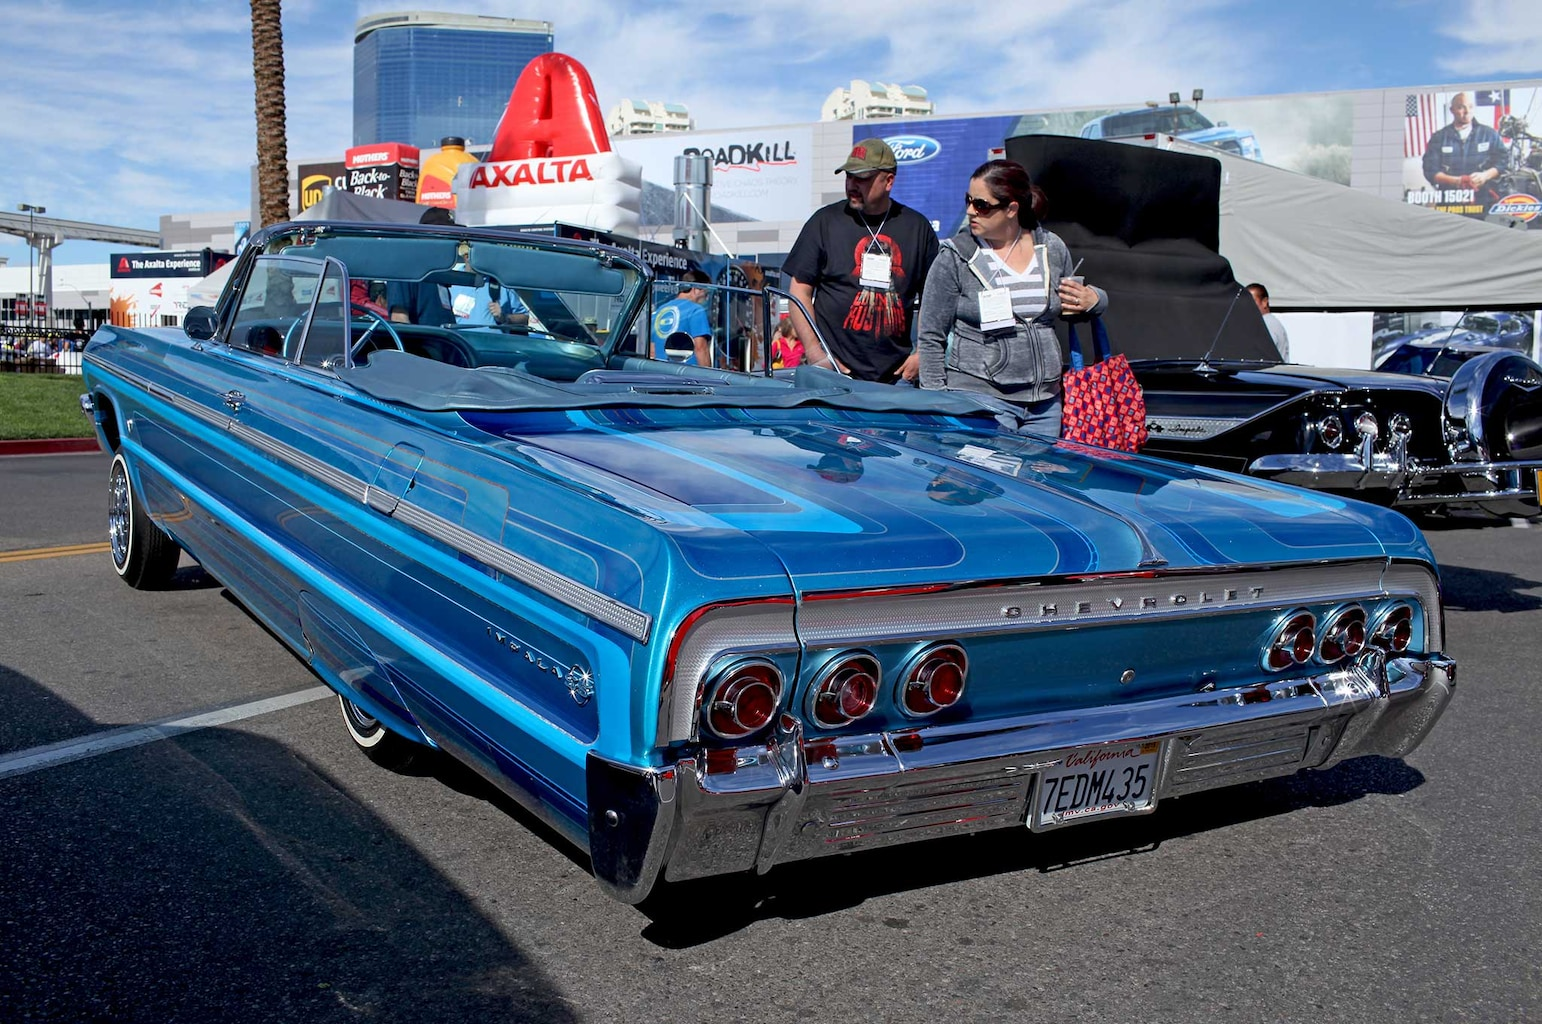 007 lowriders at sema 2015 luis lemus 1964 chevrolet impala convertible